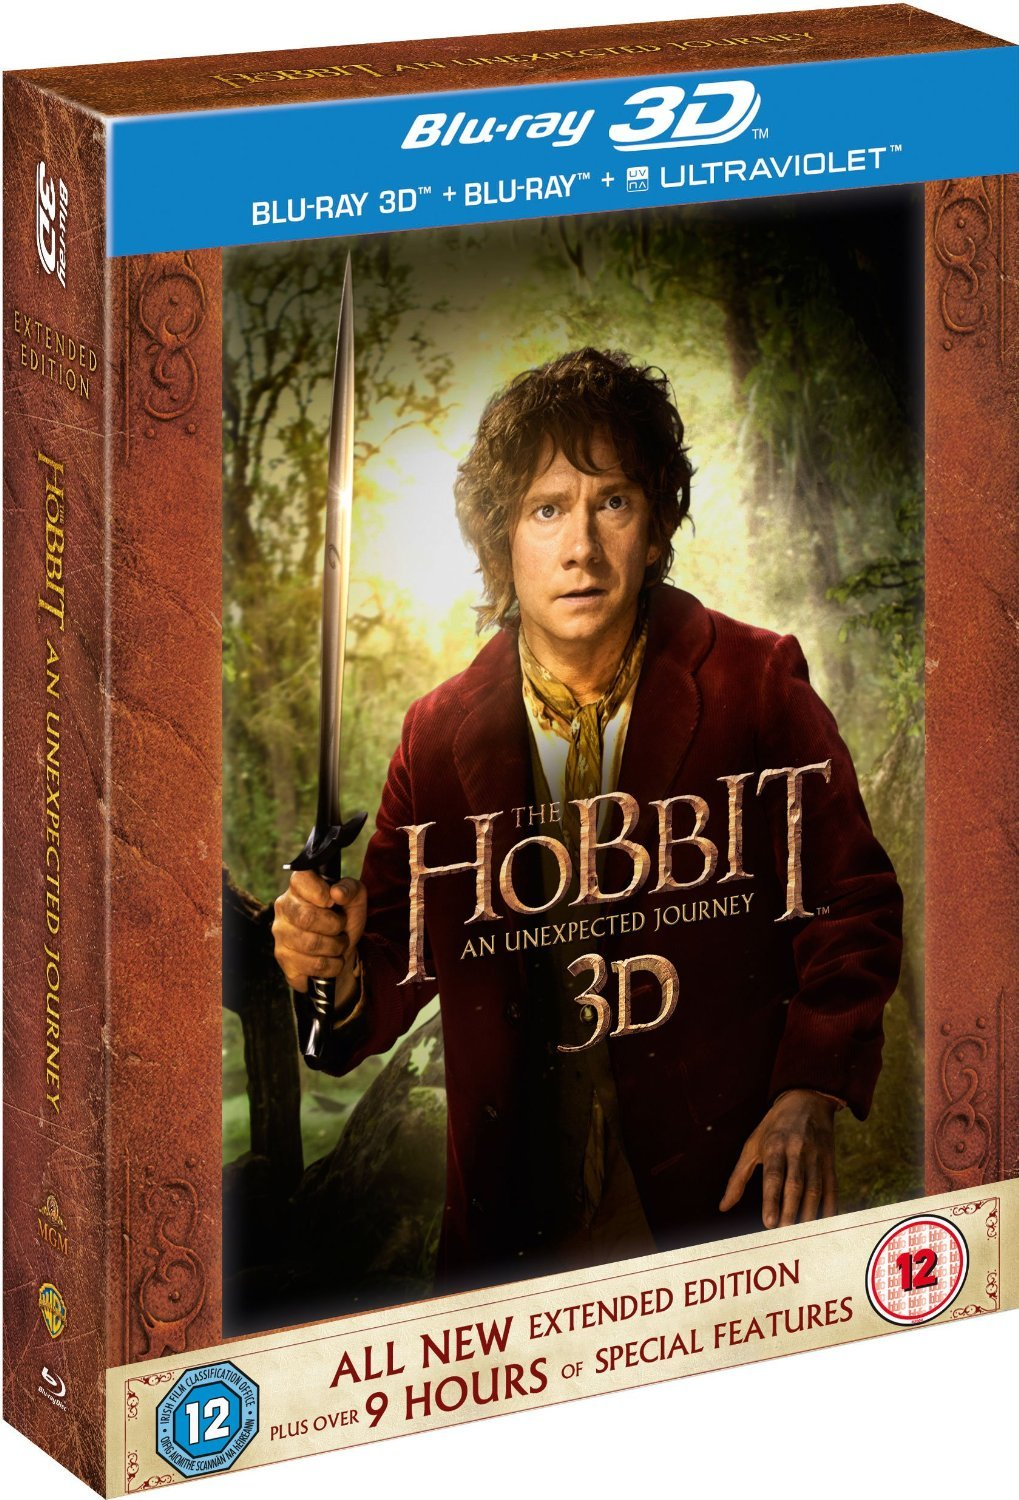 The Hobbit: An Unexpected Journey - Extended Edition [Blu-ray 3D + Blu-ray]